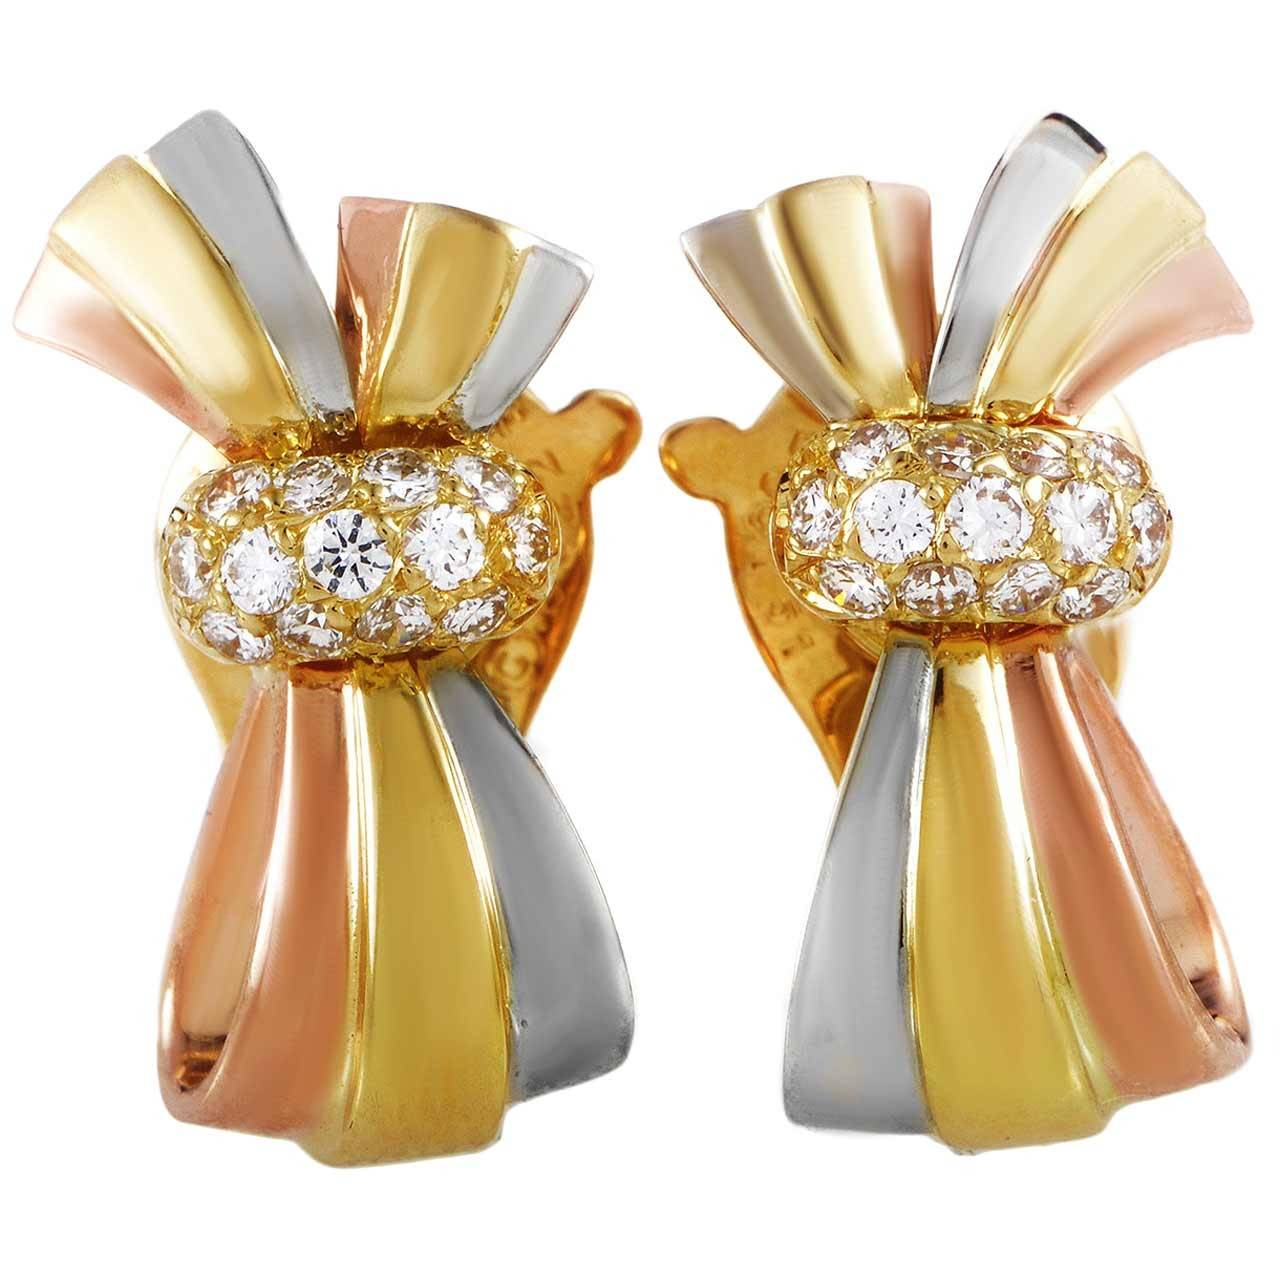 Van Cleef & Arpels Diamond Tri-Tone Gold Bow Clip-On Earrings 1